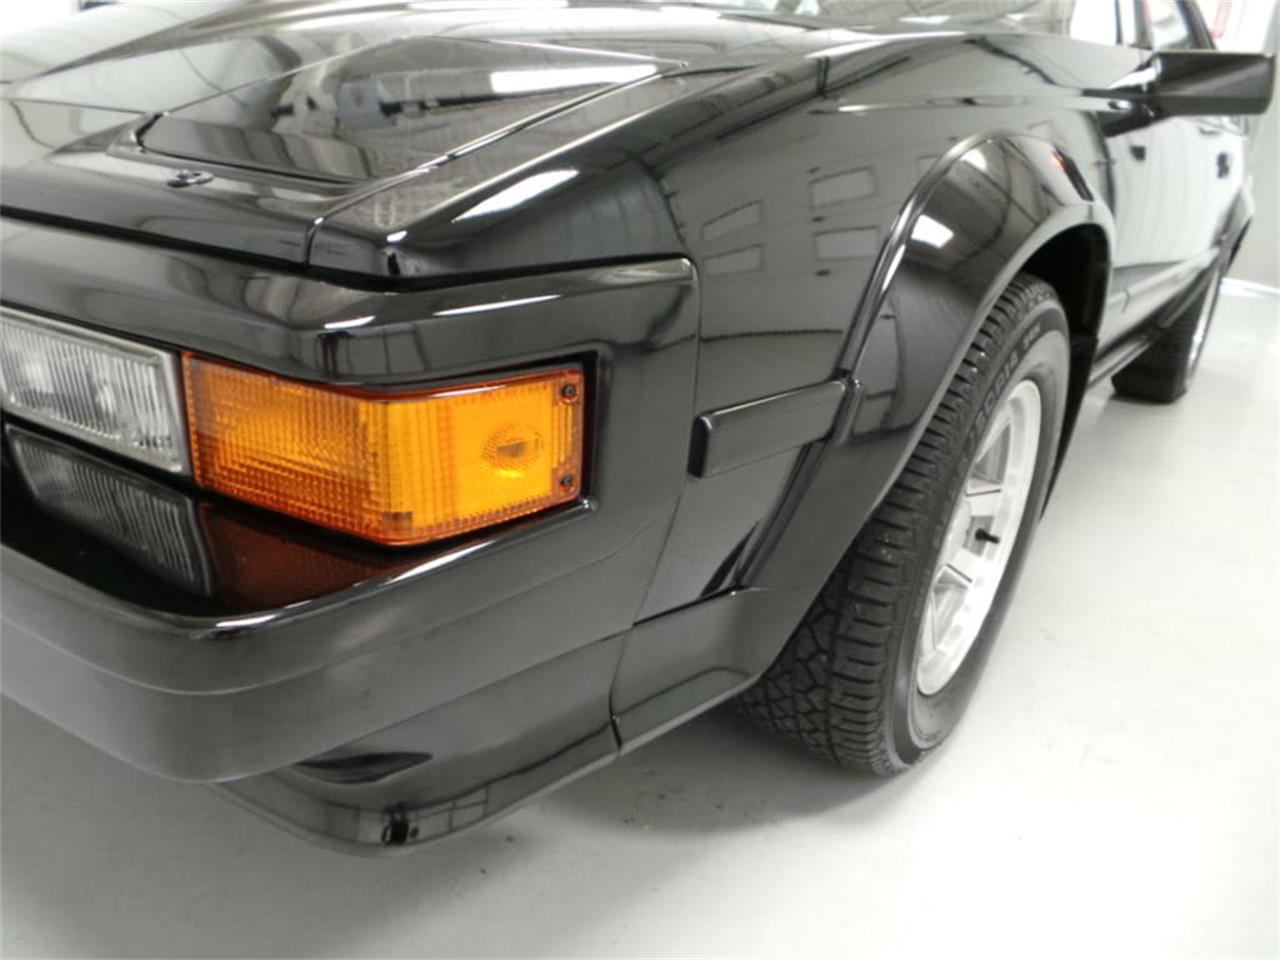 Large Picture of '84 Celica - $17,950.00 - JLCQ